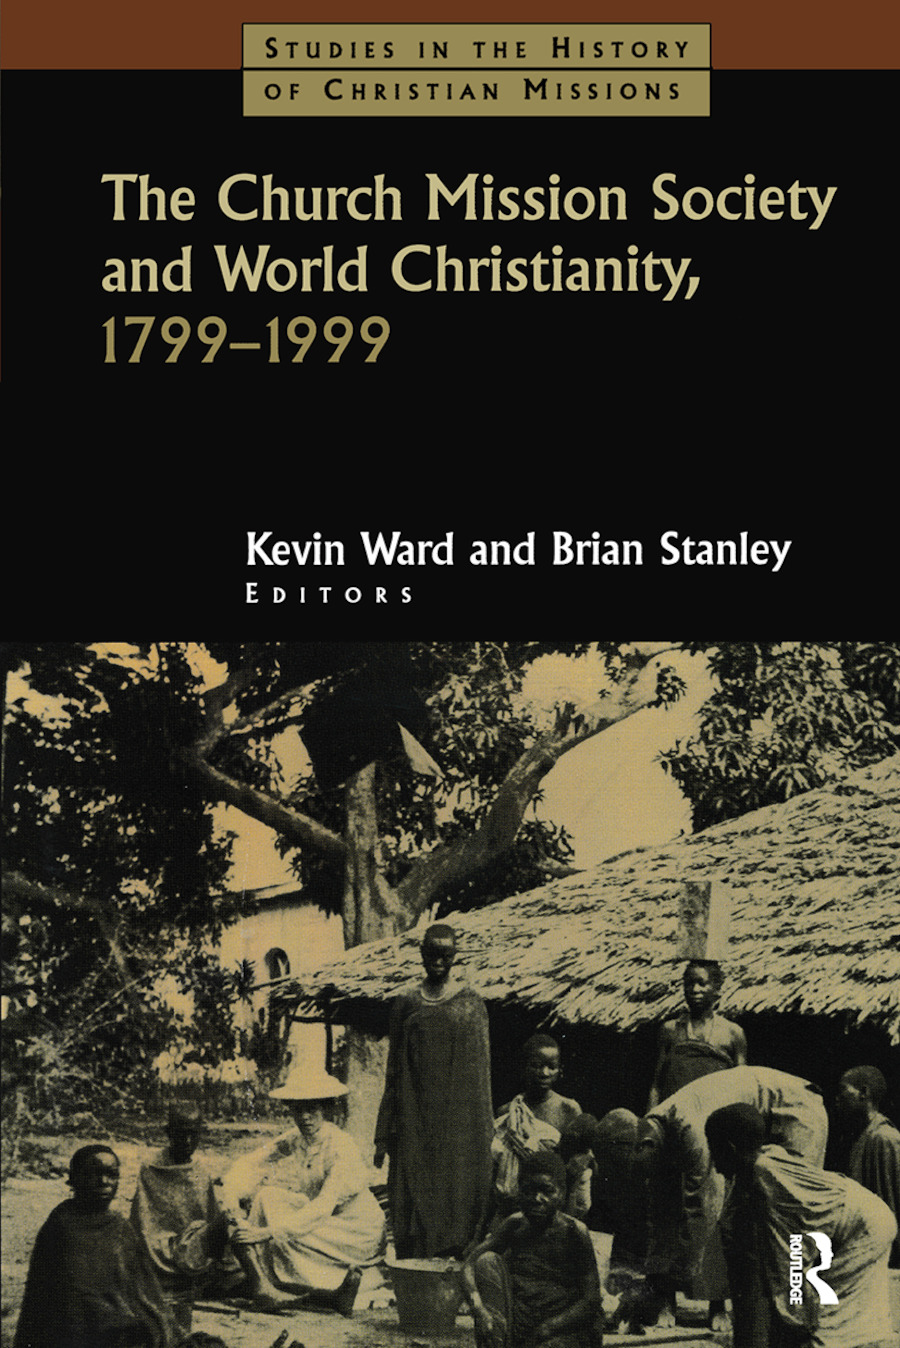 The Church Mission Society and World Christianity, 1799-1999